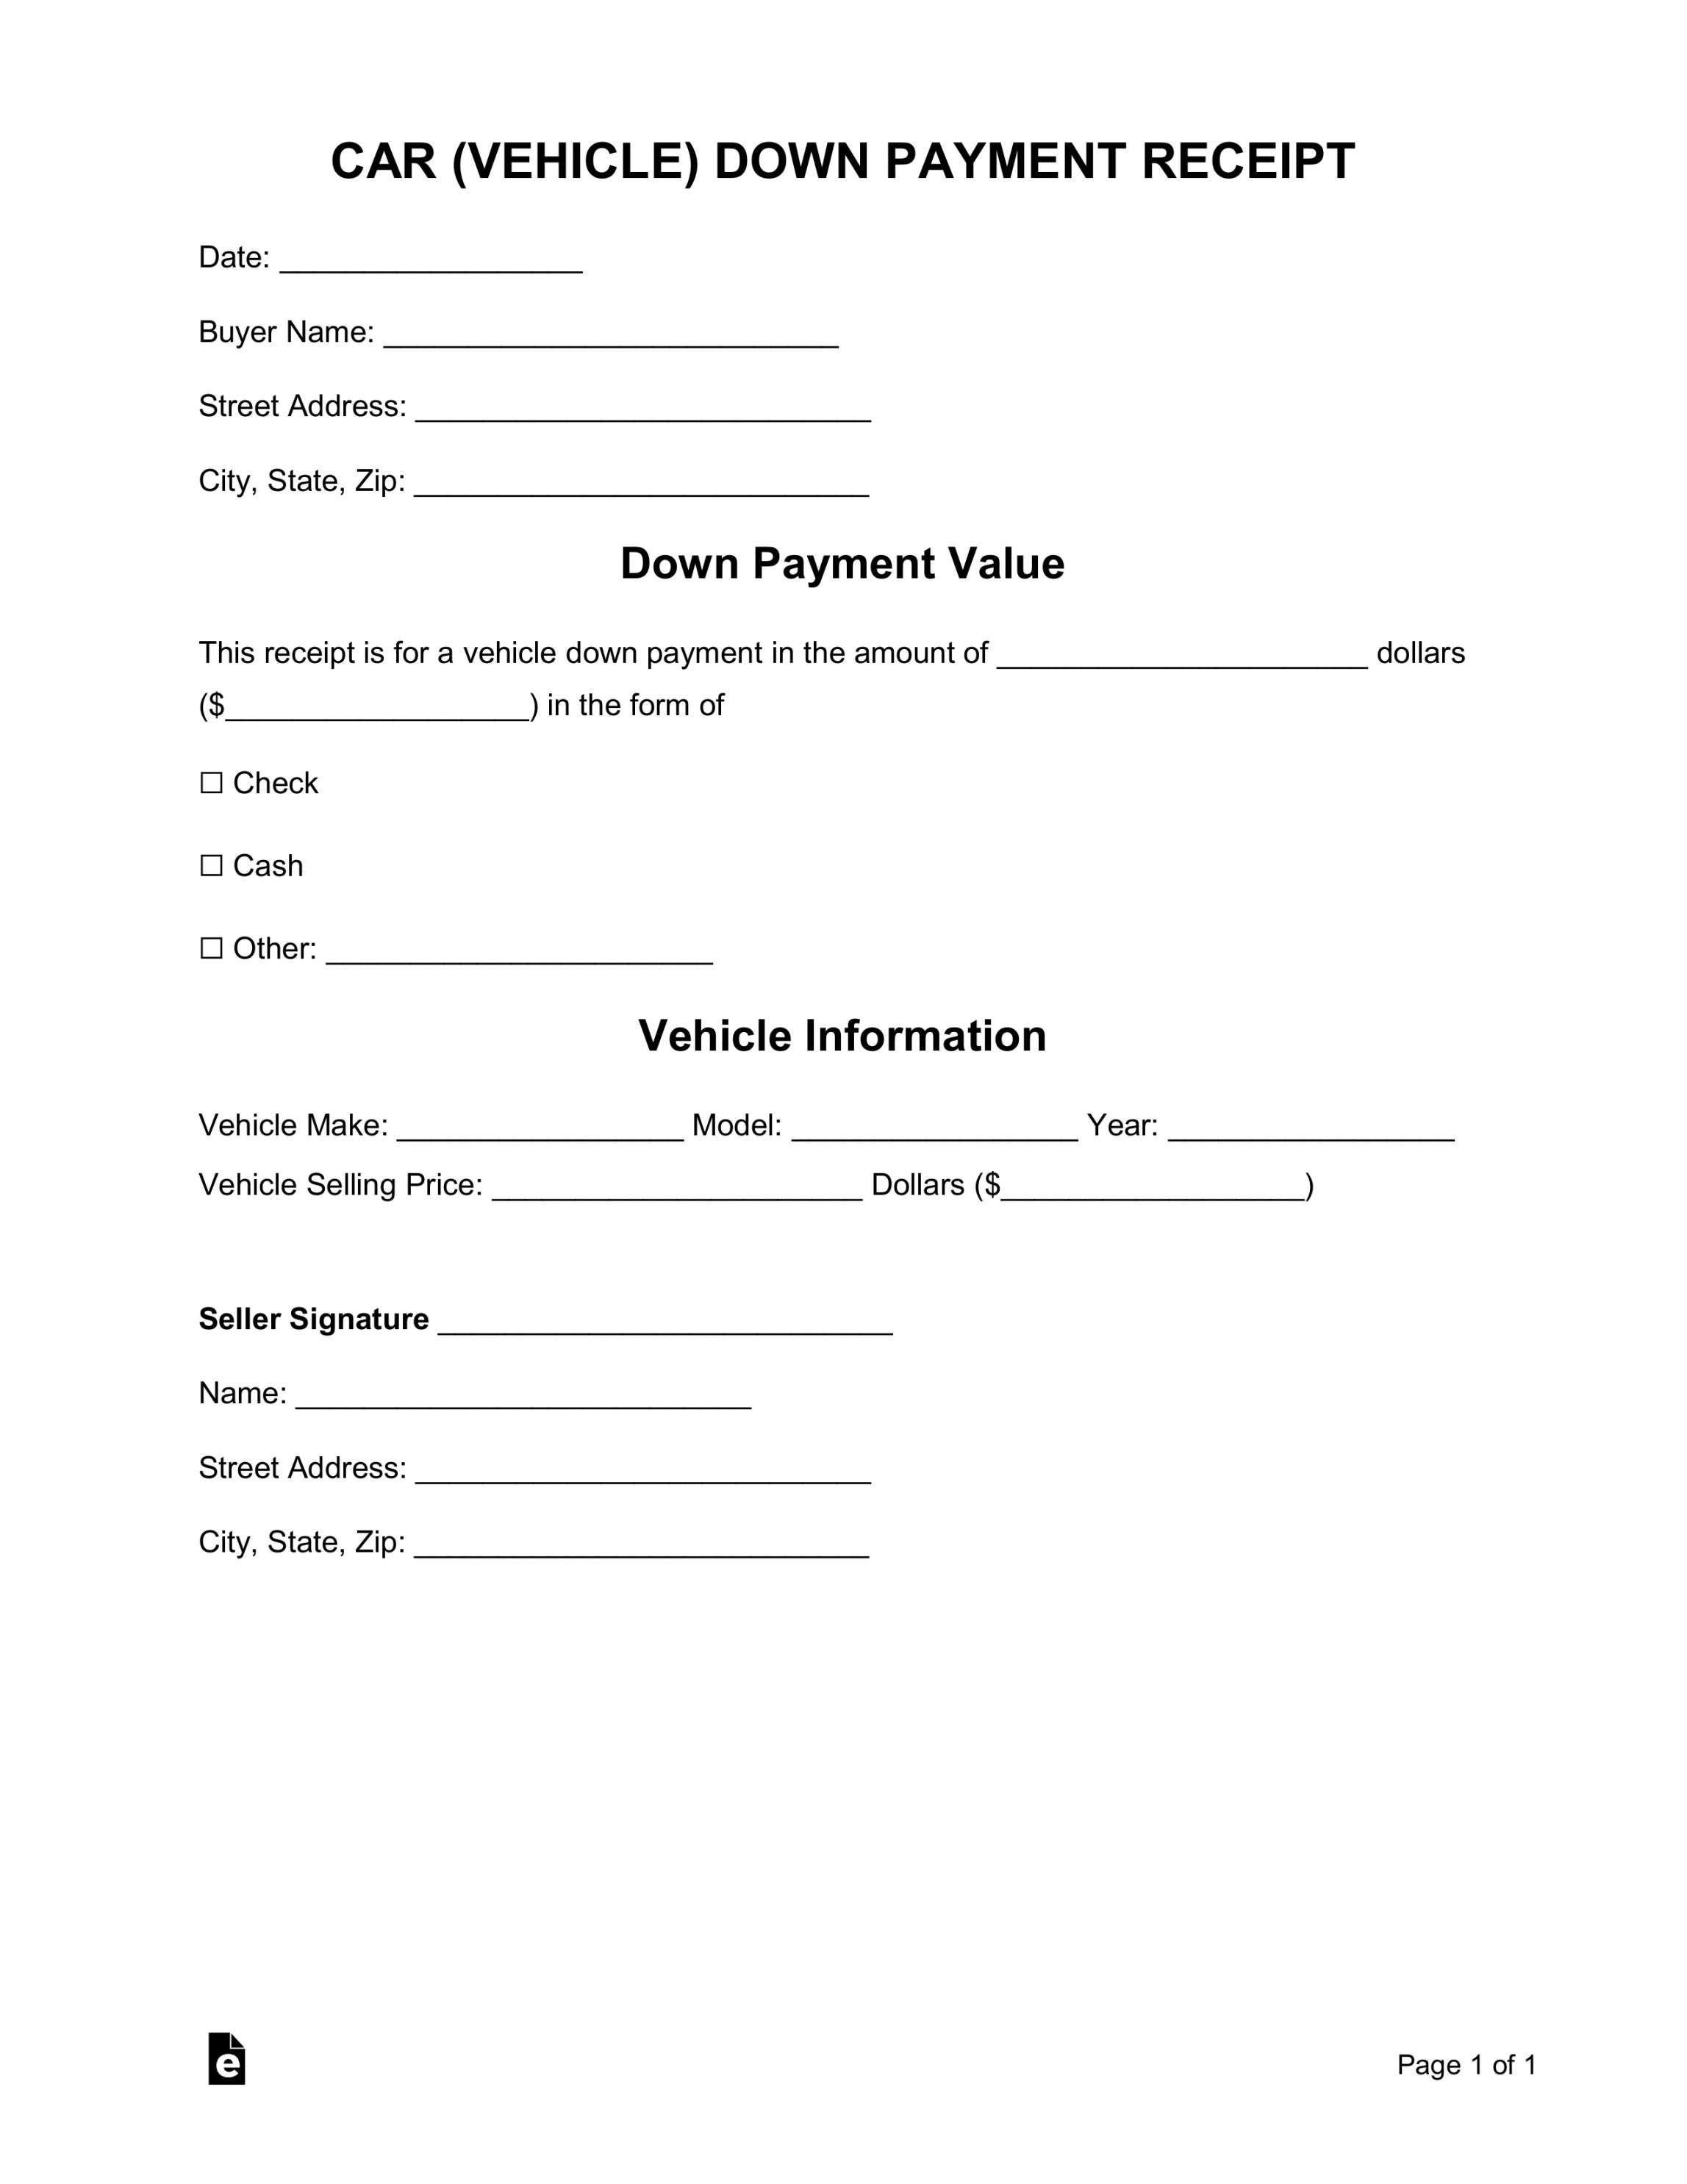 Get Our Free Auto Deposit Receipt Template Car Payment Receipt Template Invoice Template